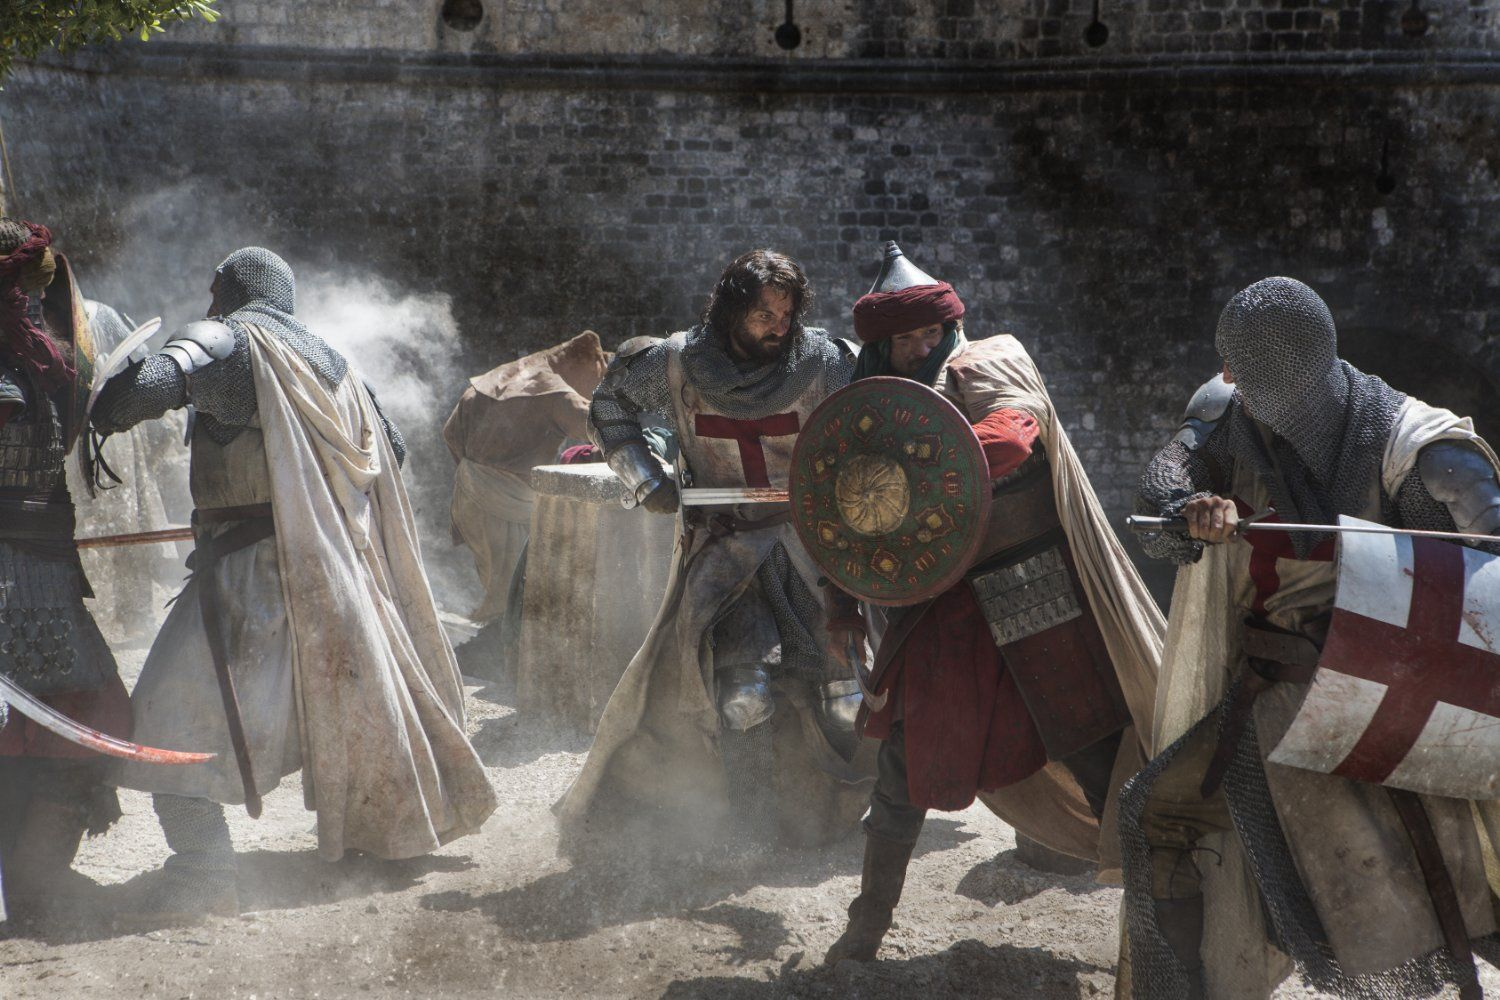 Tom Cullen and others fighting in Knightfall